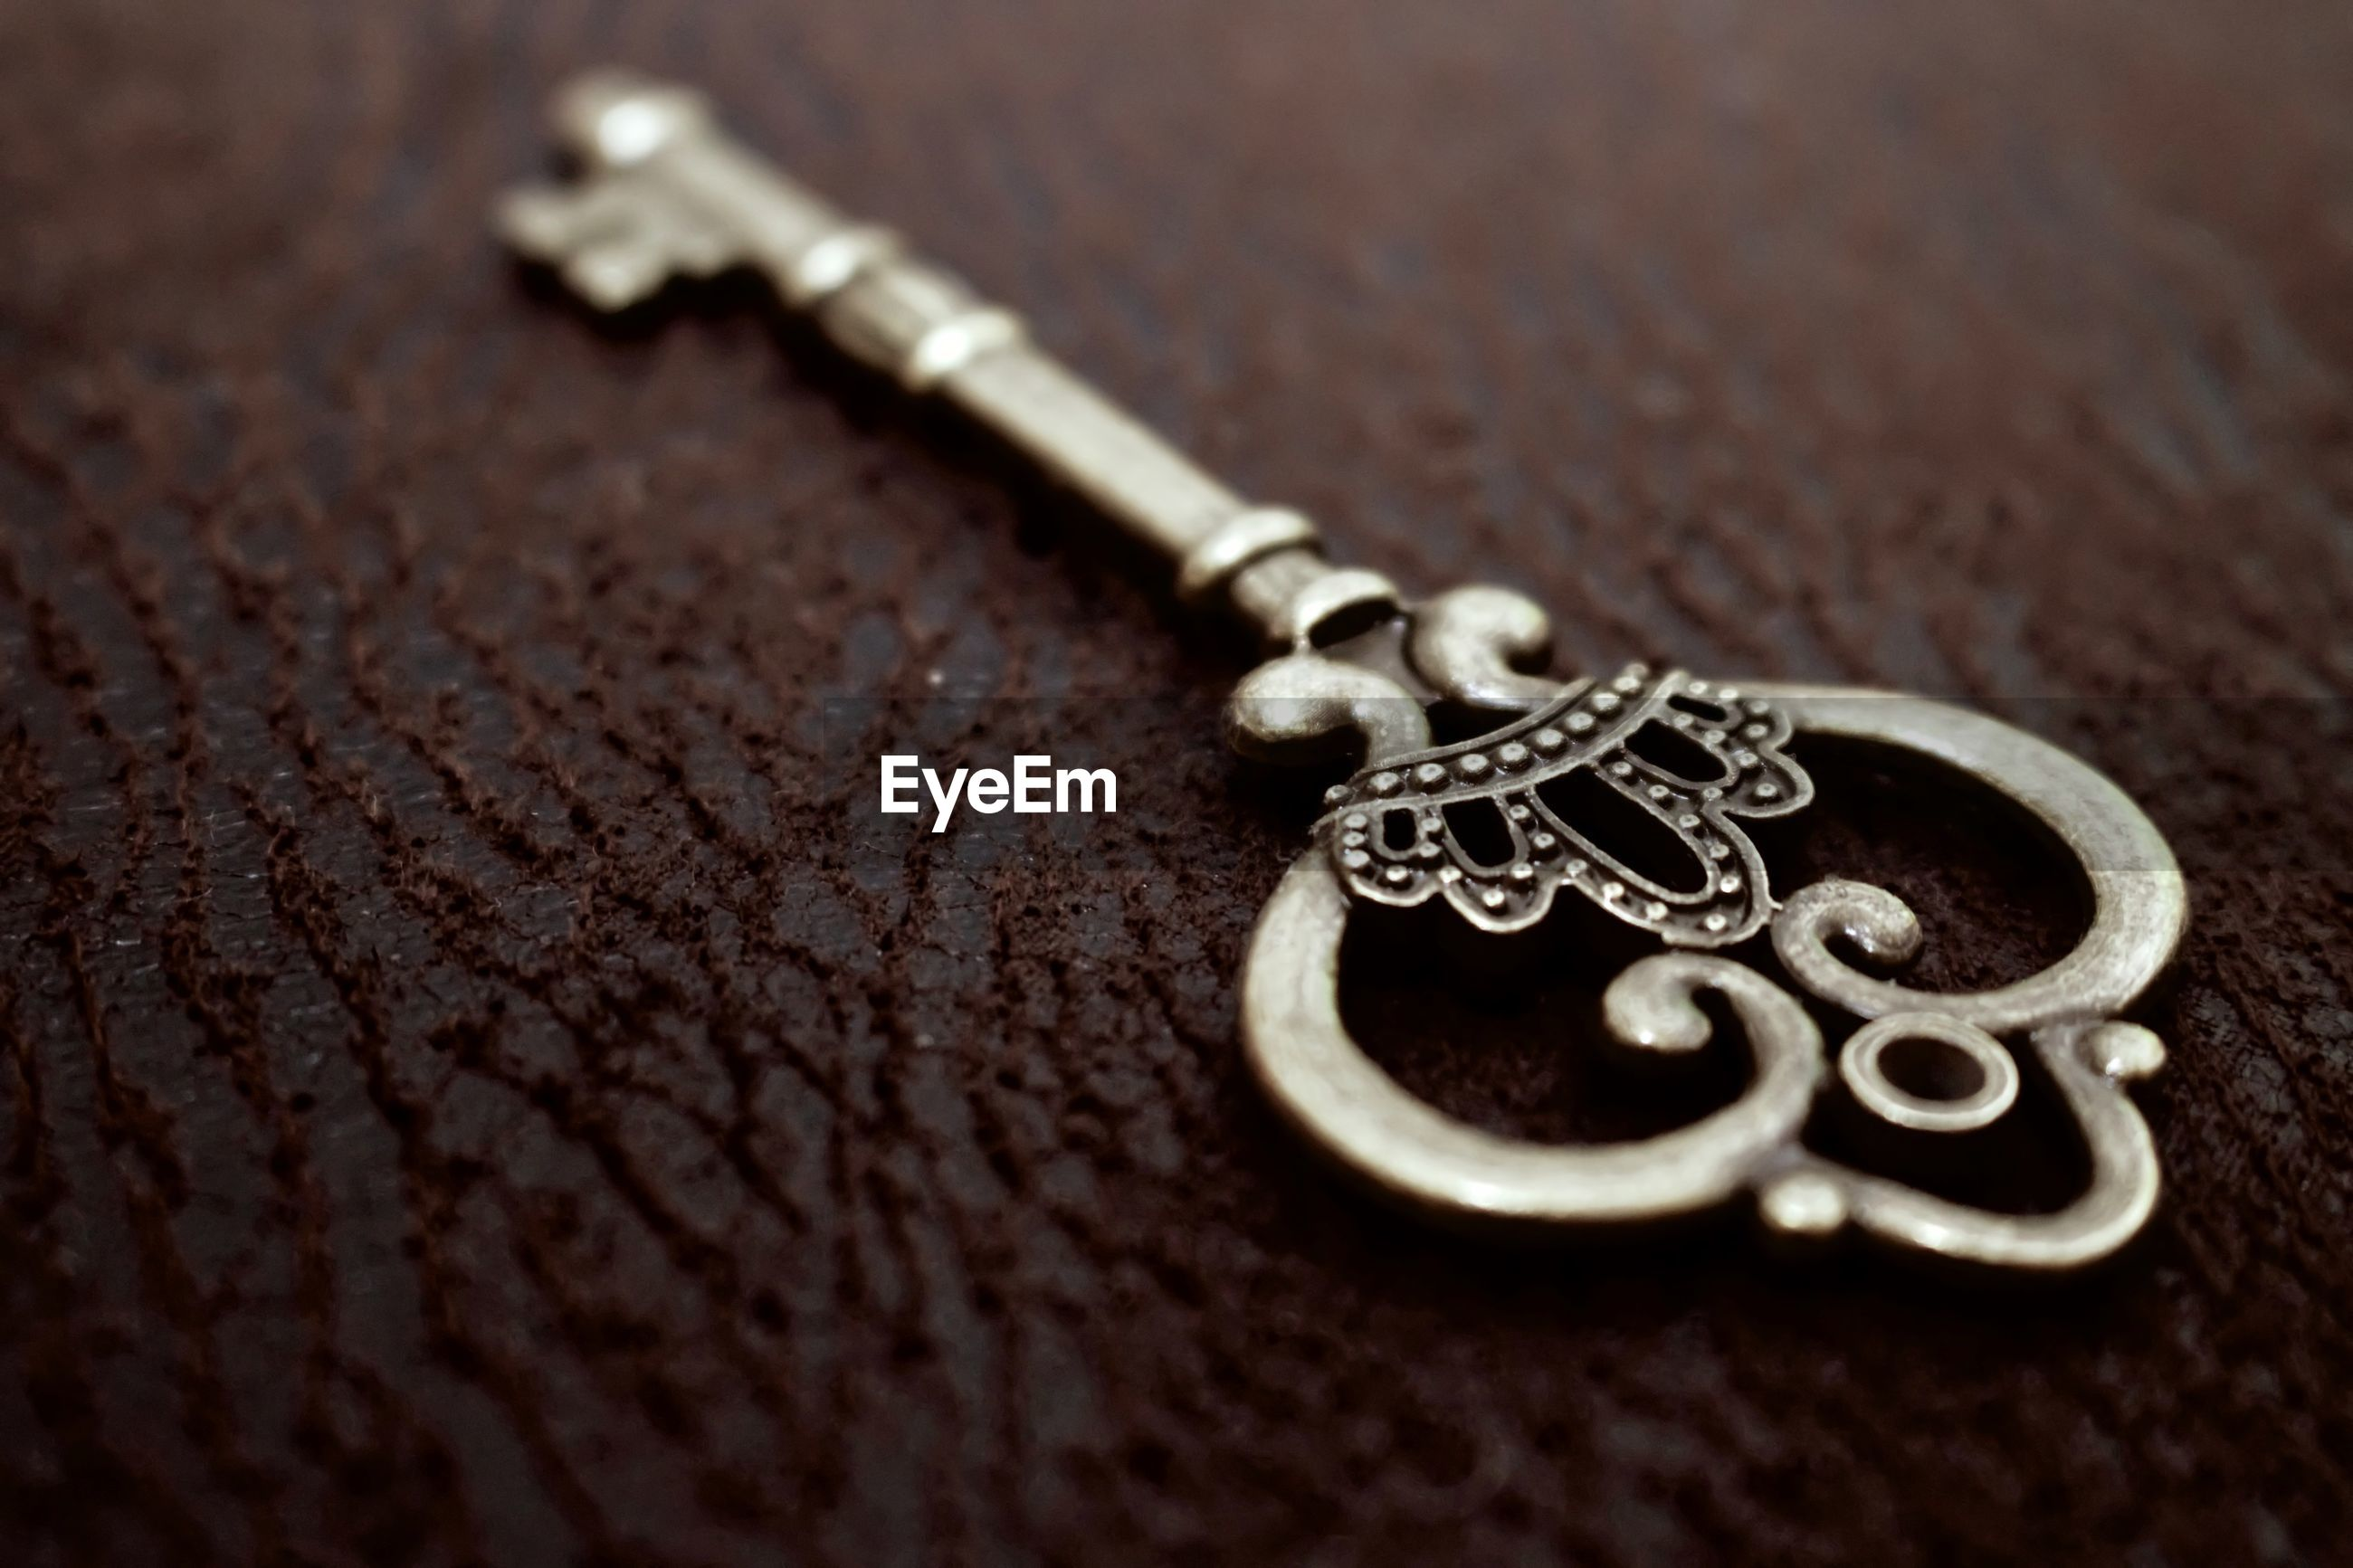 Close-up of key on table